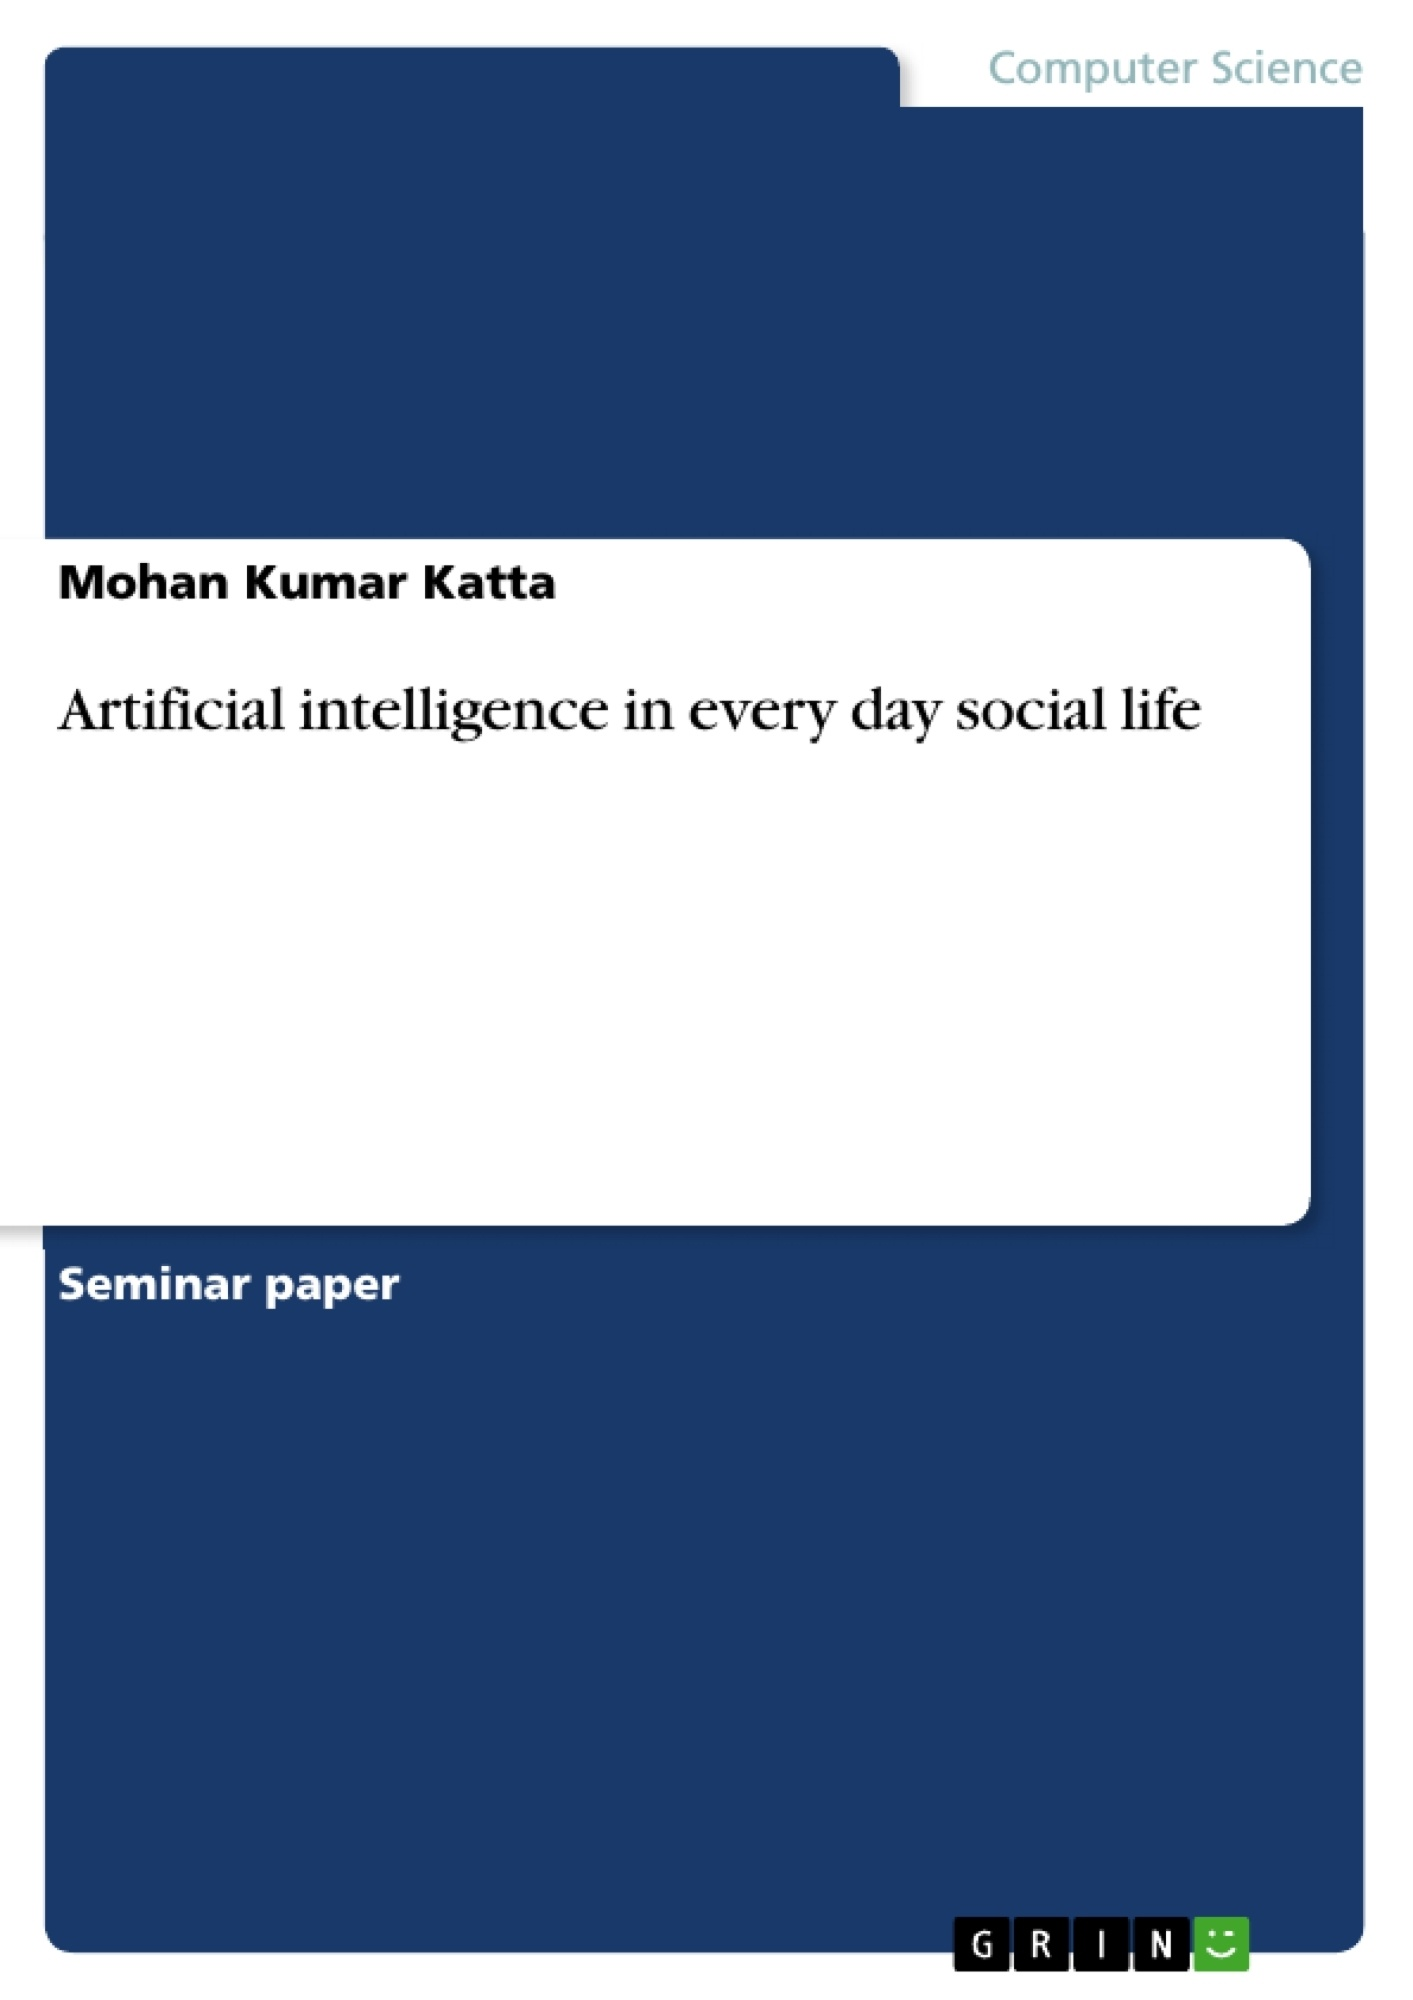 Title: Artificial intelligence in every day social life